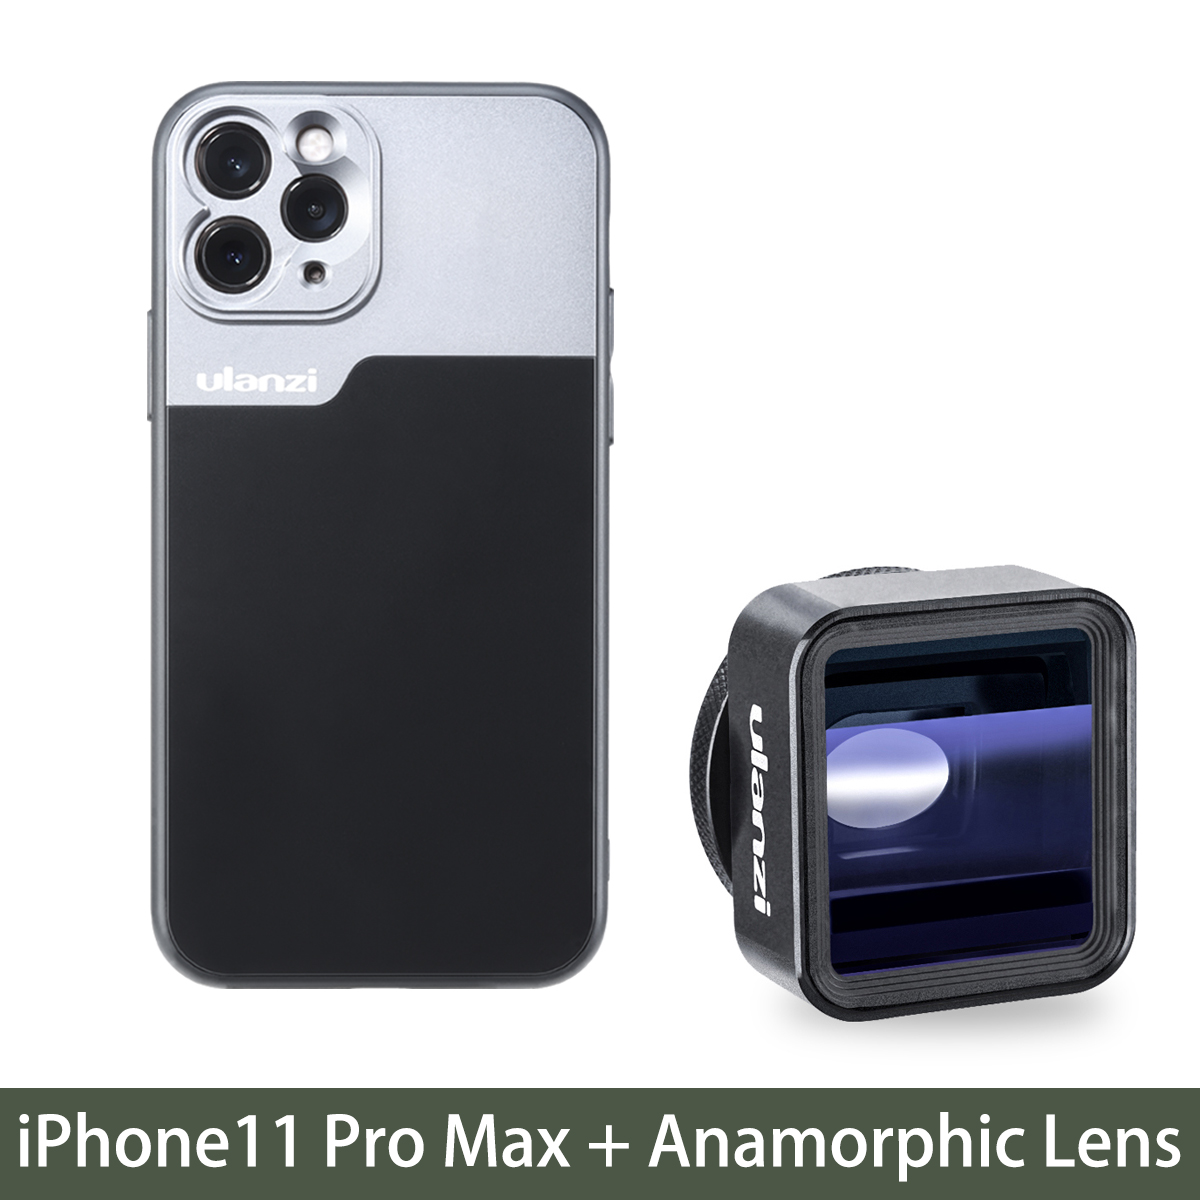 17mm Thread Phone Case for iPhone 11/11 Pro/11 Pro Max Anamorphic Lens Protect Smartphone Shakeproof Solid Cover For iPhone 11 Pro Max case+Anamorphic Lens